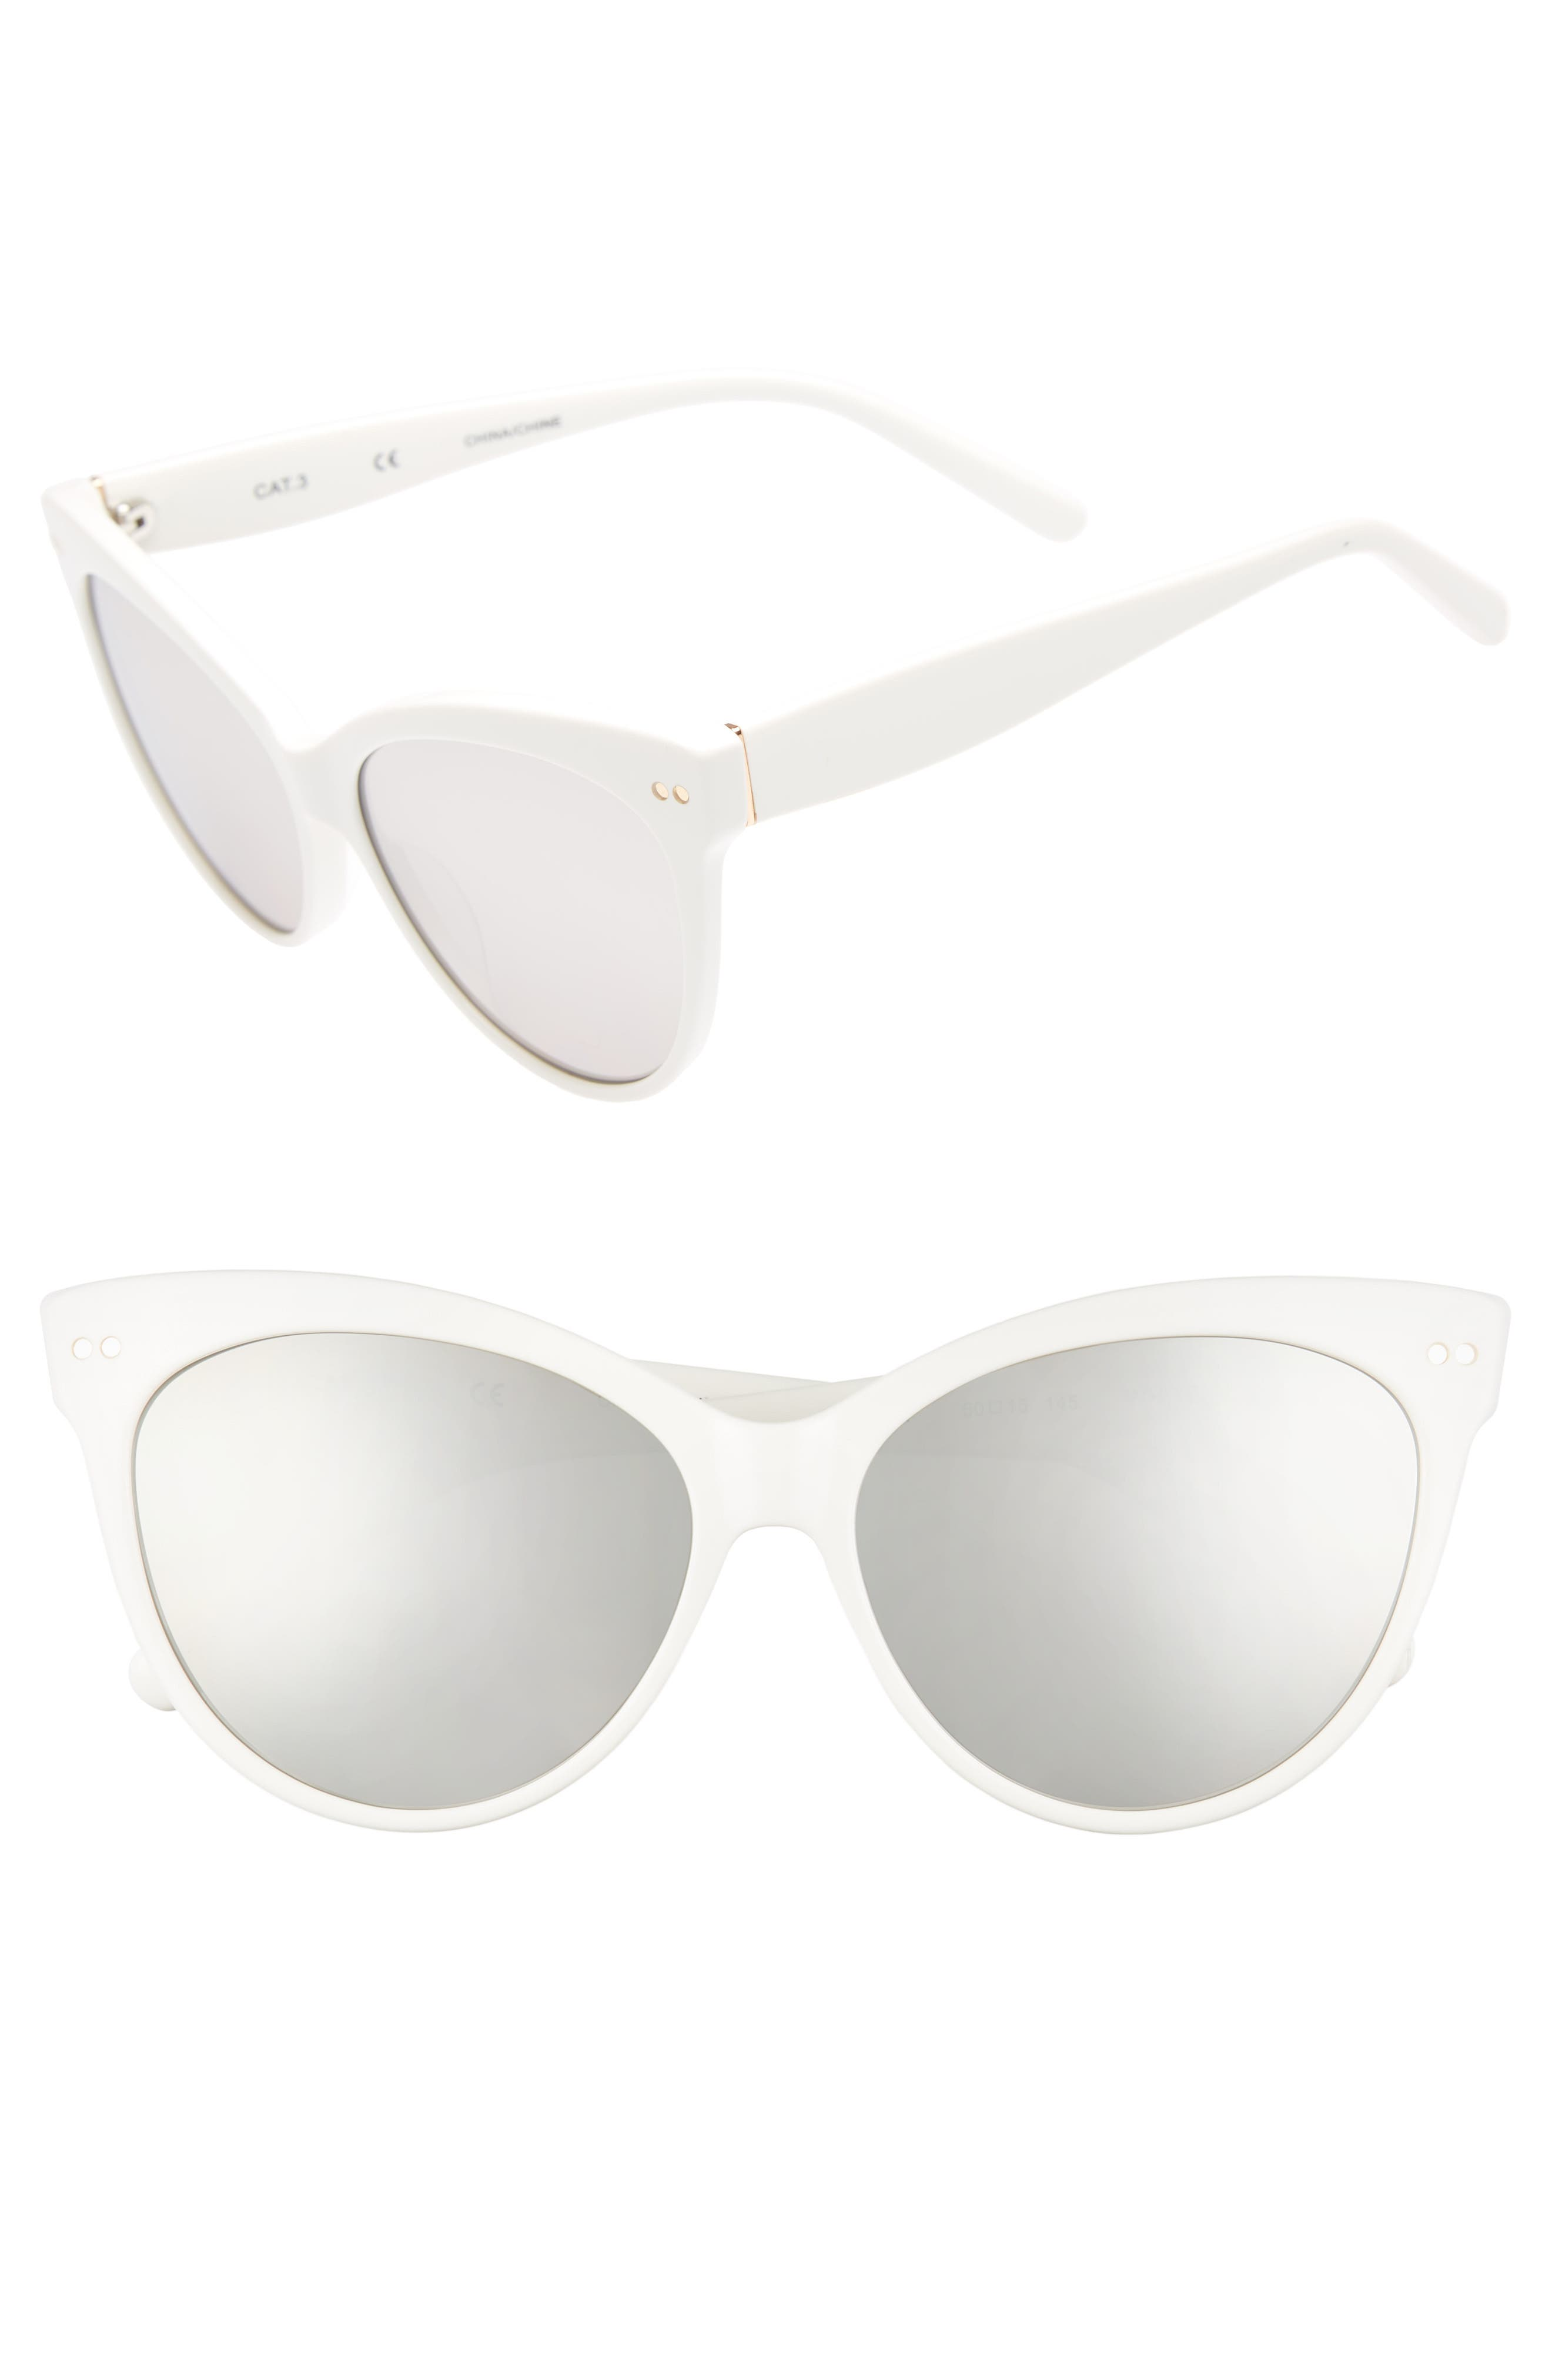 Chelsea28 Audrey 60mm Cat Eye Sunglasses